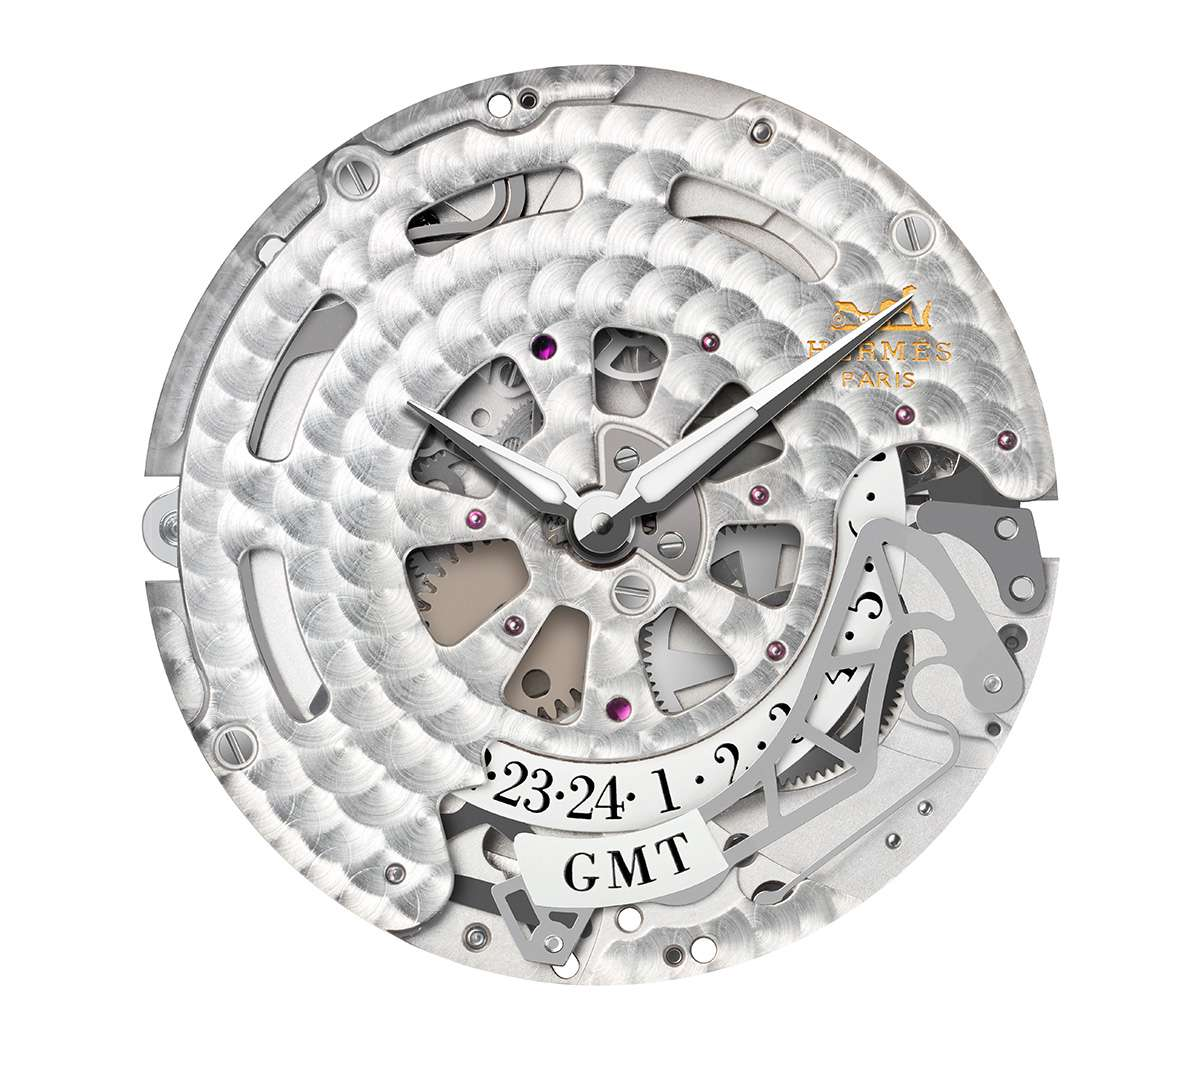 L'Heure Masquée by Hermès, dial side of the H1925 movement when the button in the crown is pressed, revealing the hour hand and the second time zone hour reading